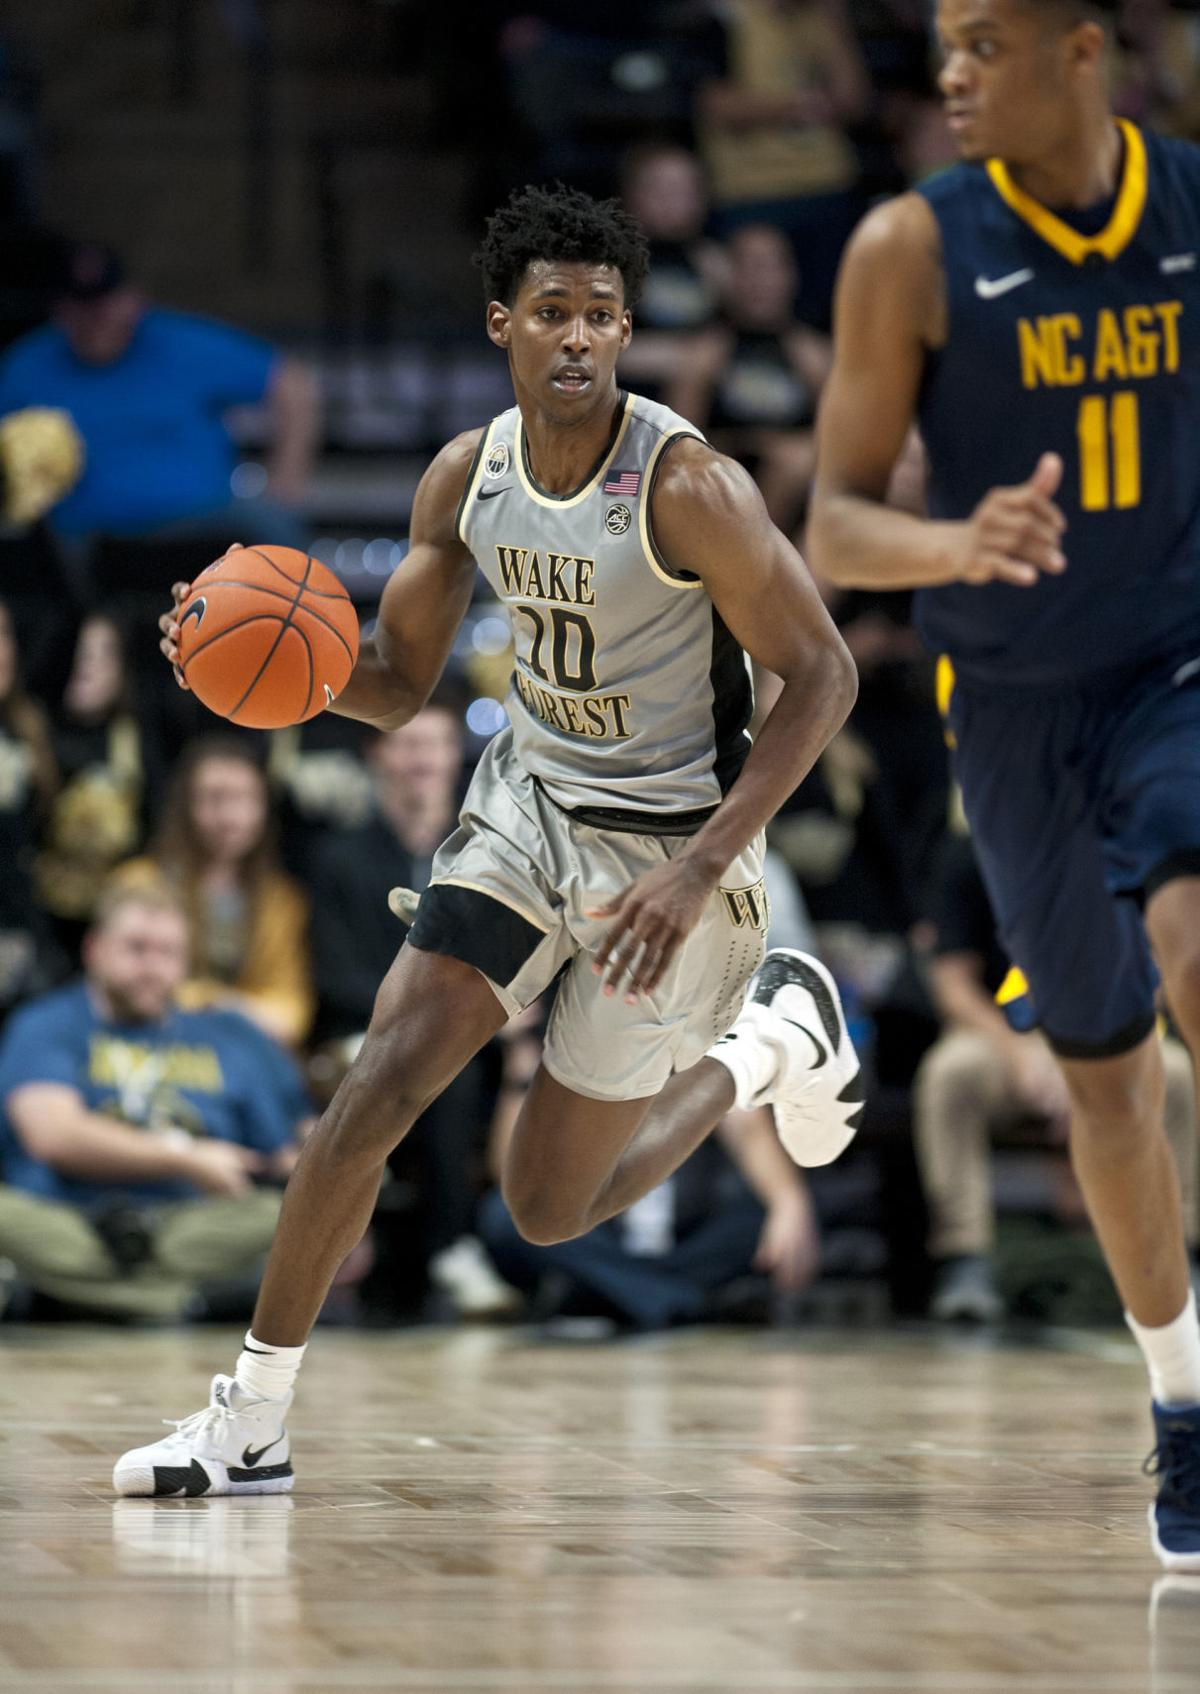 NC A&T Wake Forest basketball